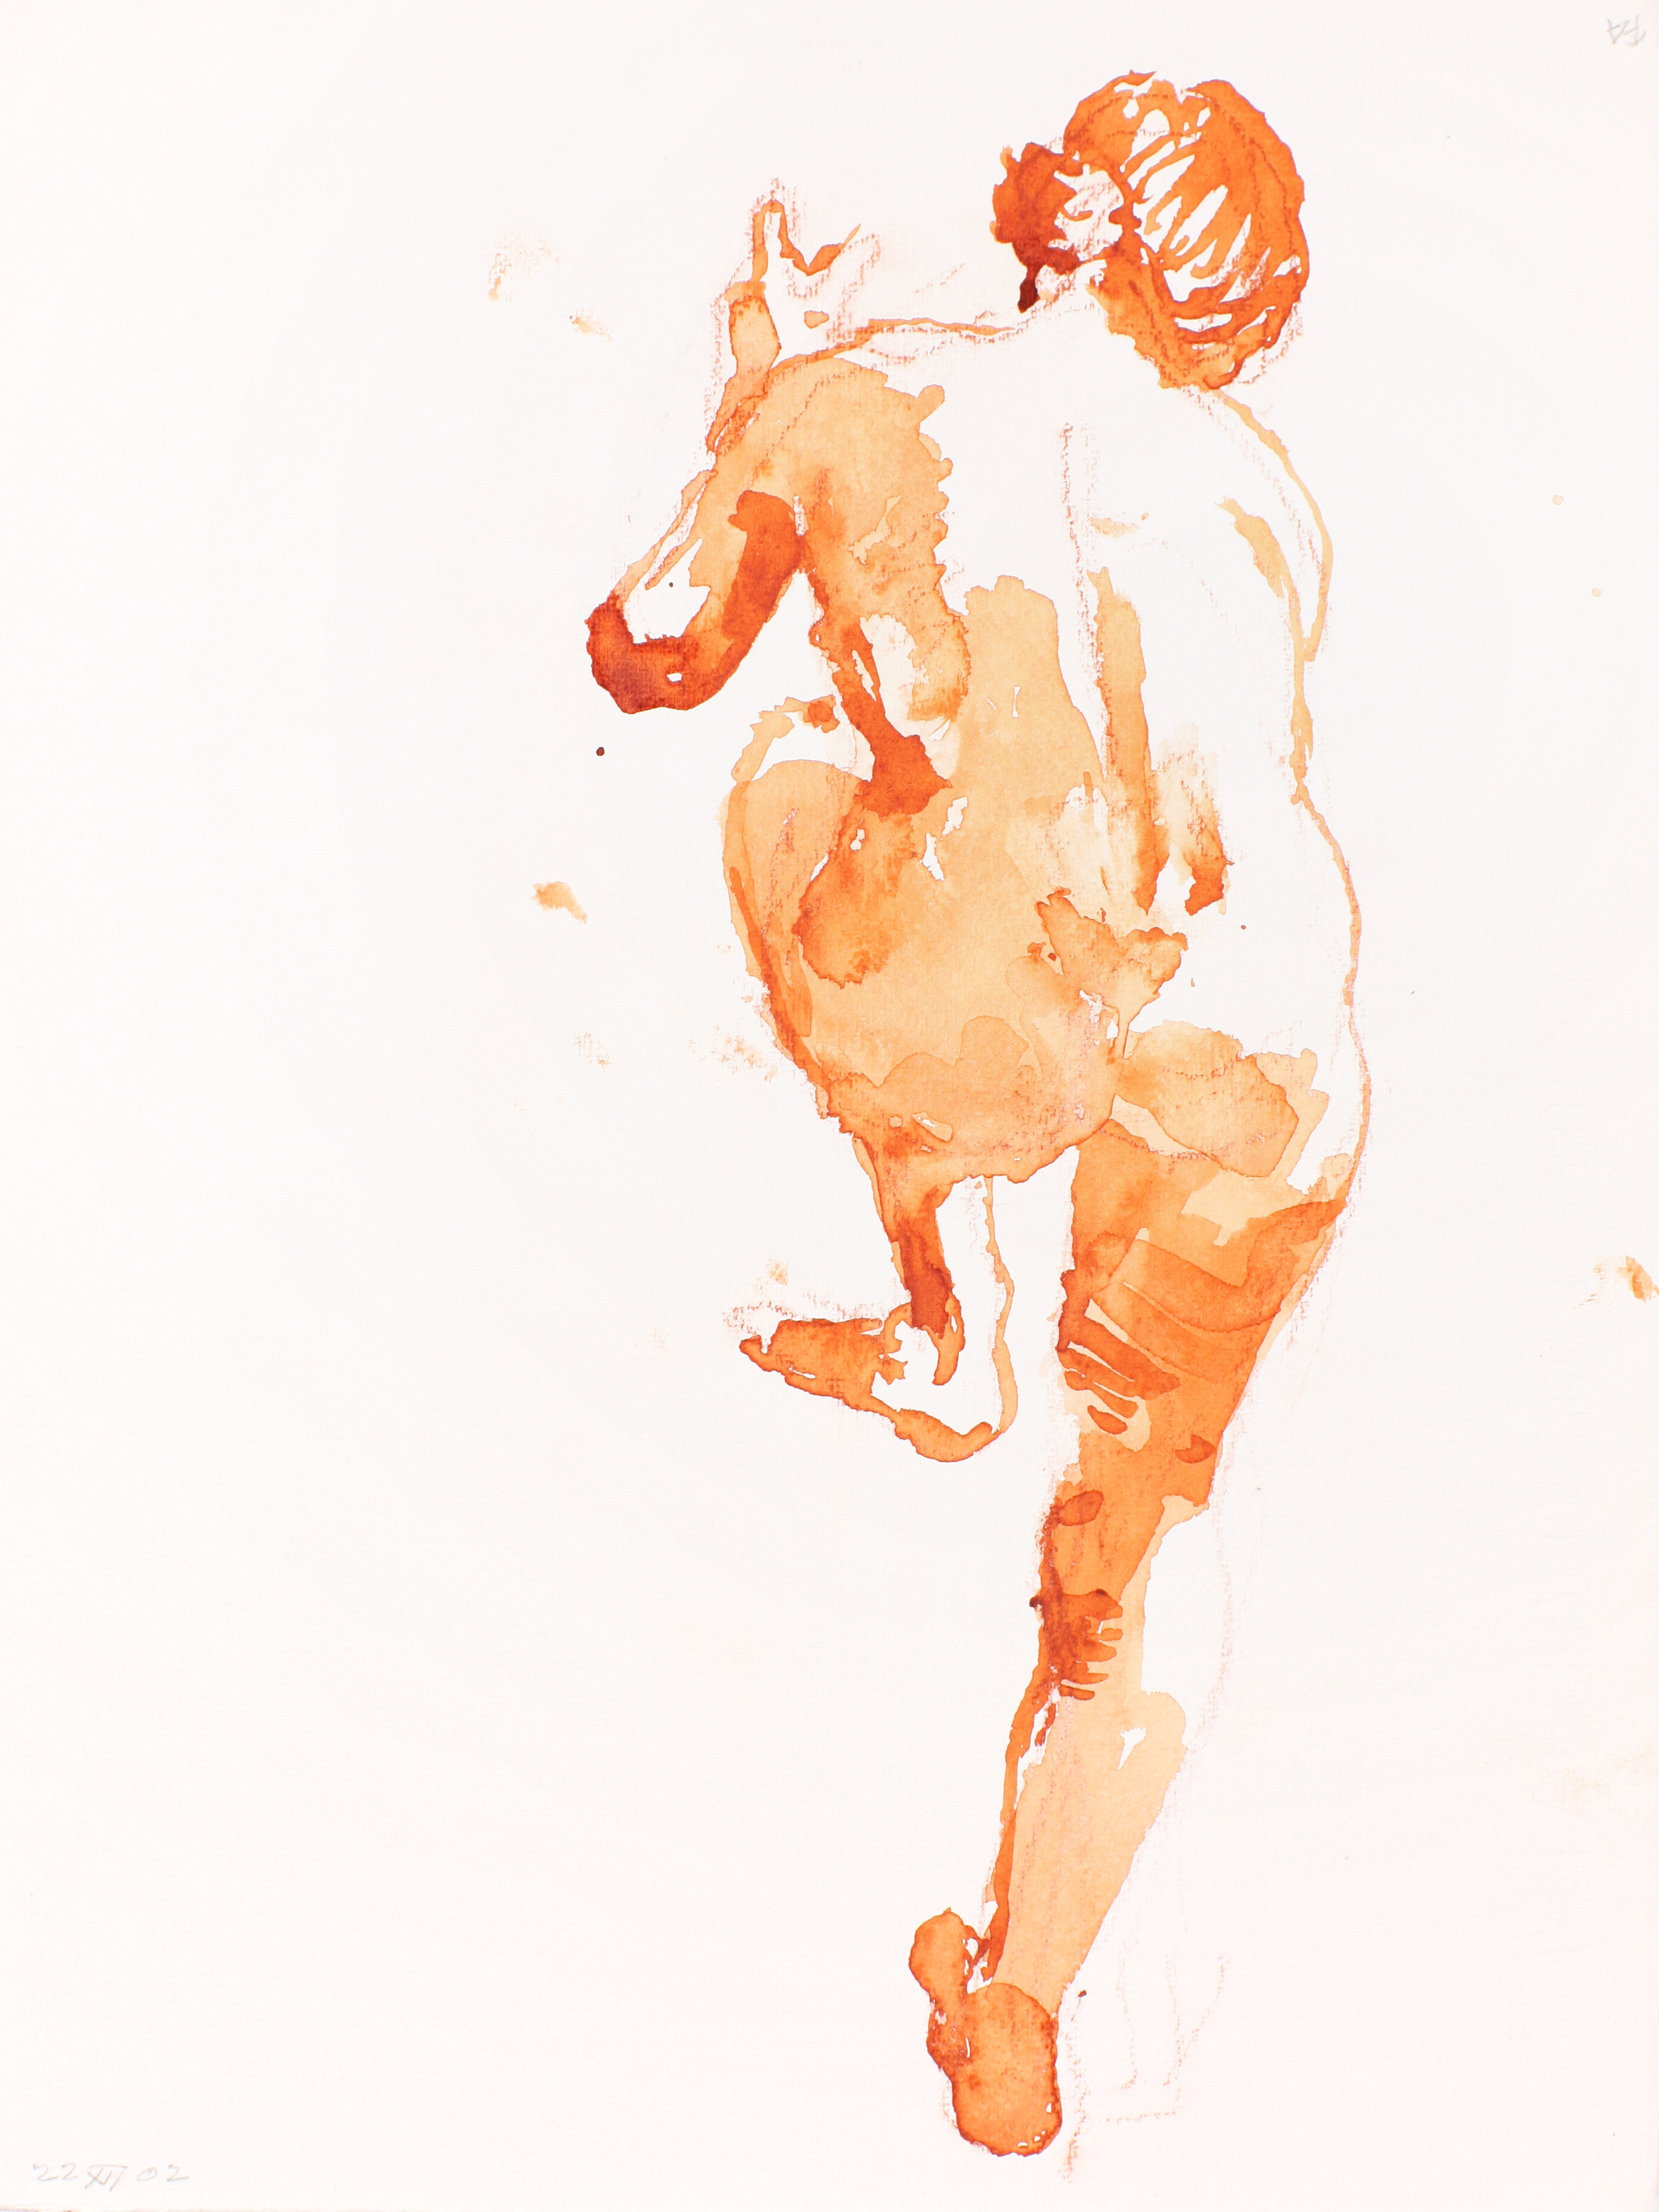 2002_Standing_Nude_with_Raised_Left_Leg_From_Back_watercolour_and_red_conté_on_paper_15x11in_WPF194.jpg